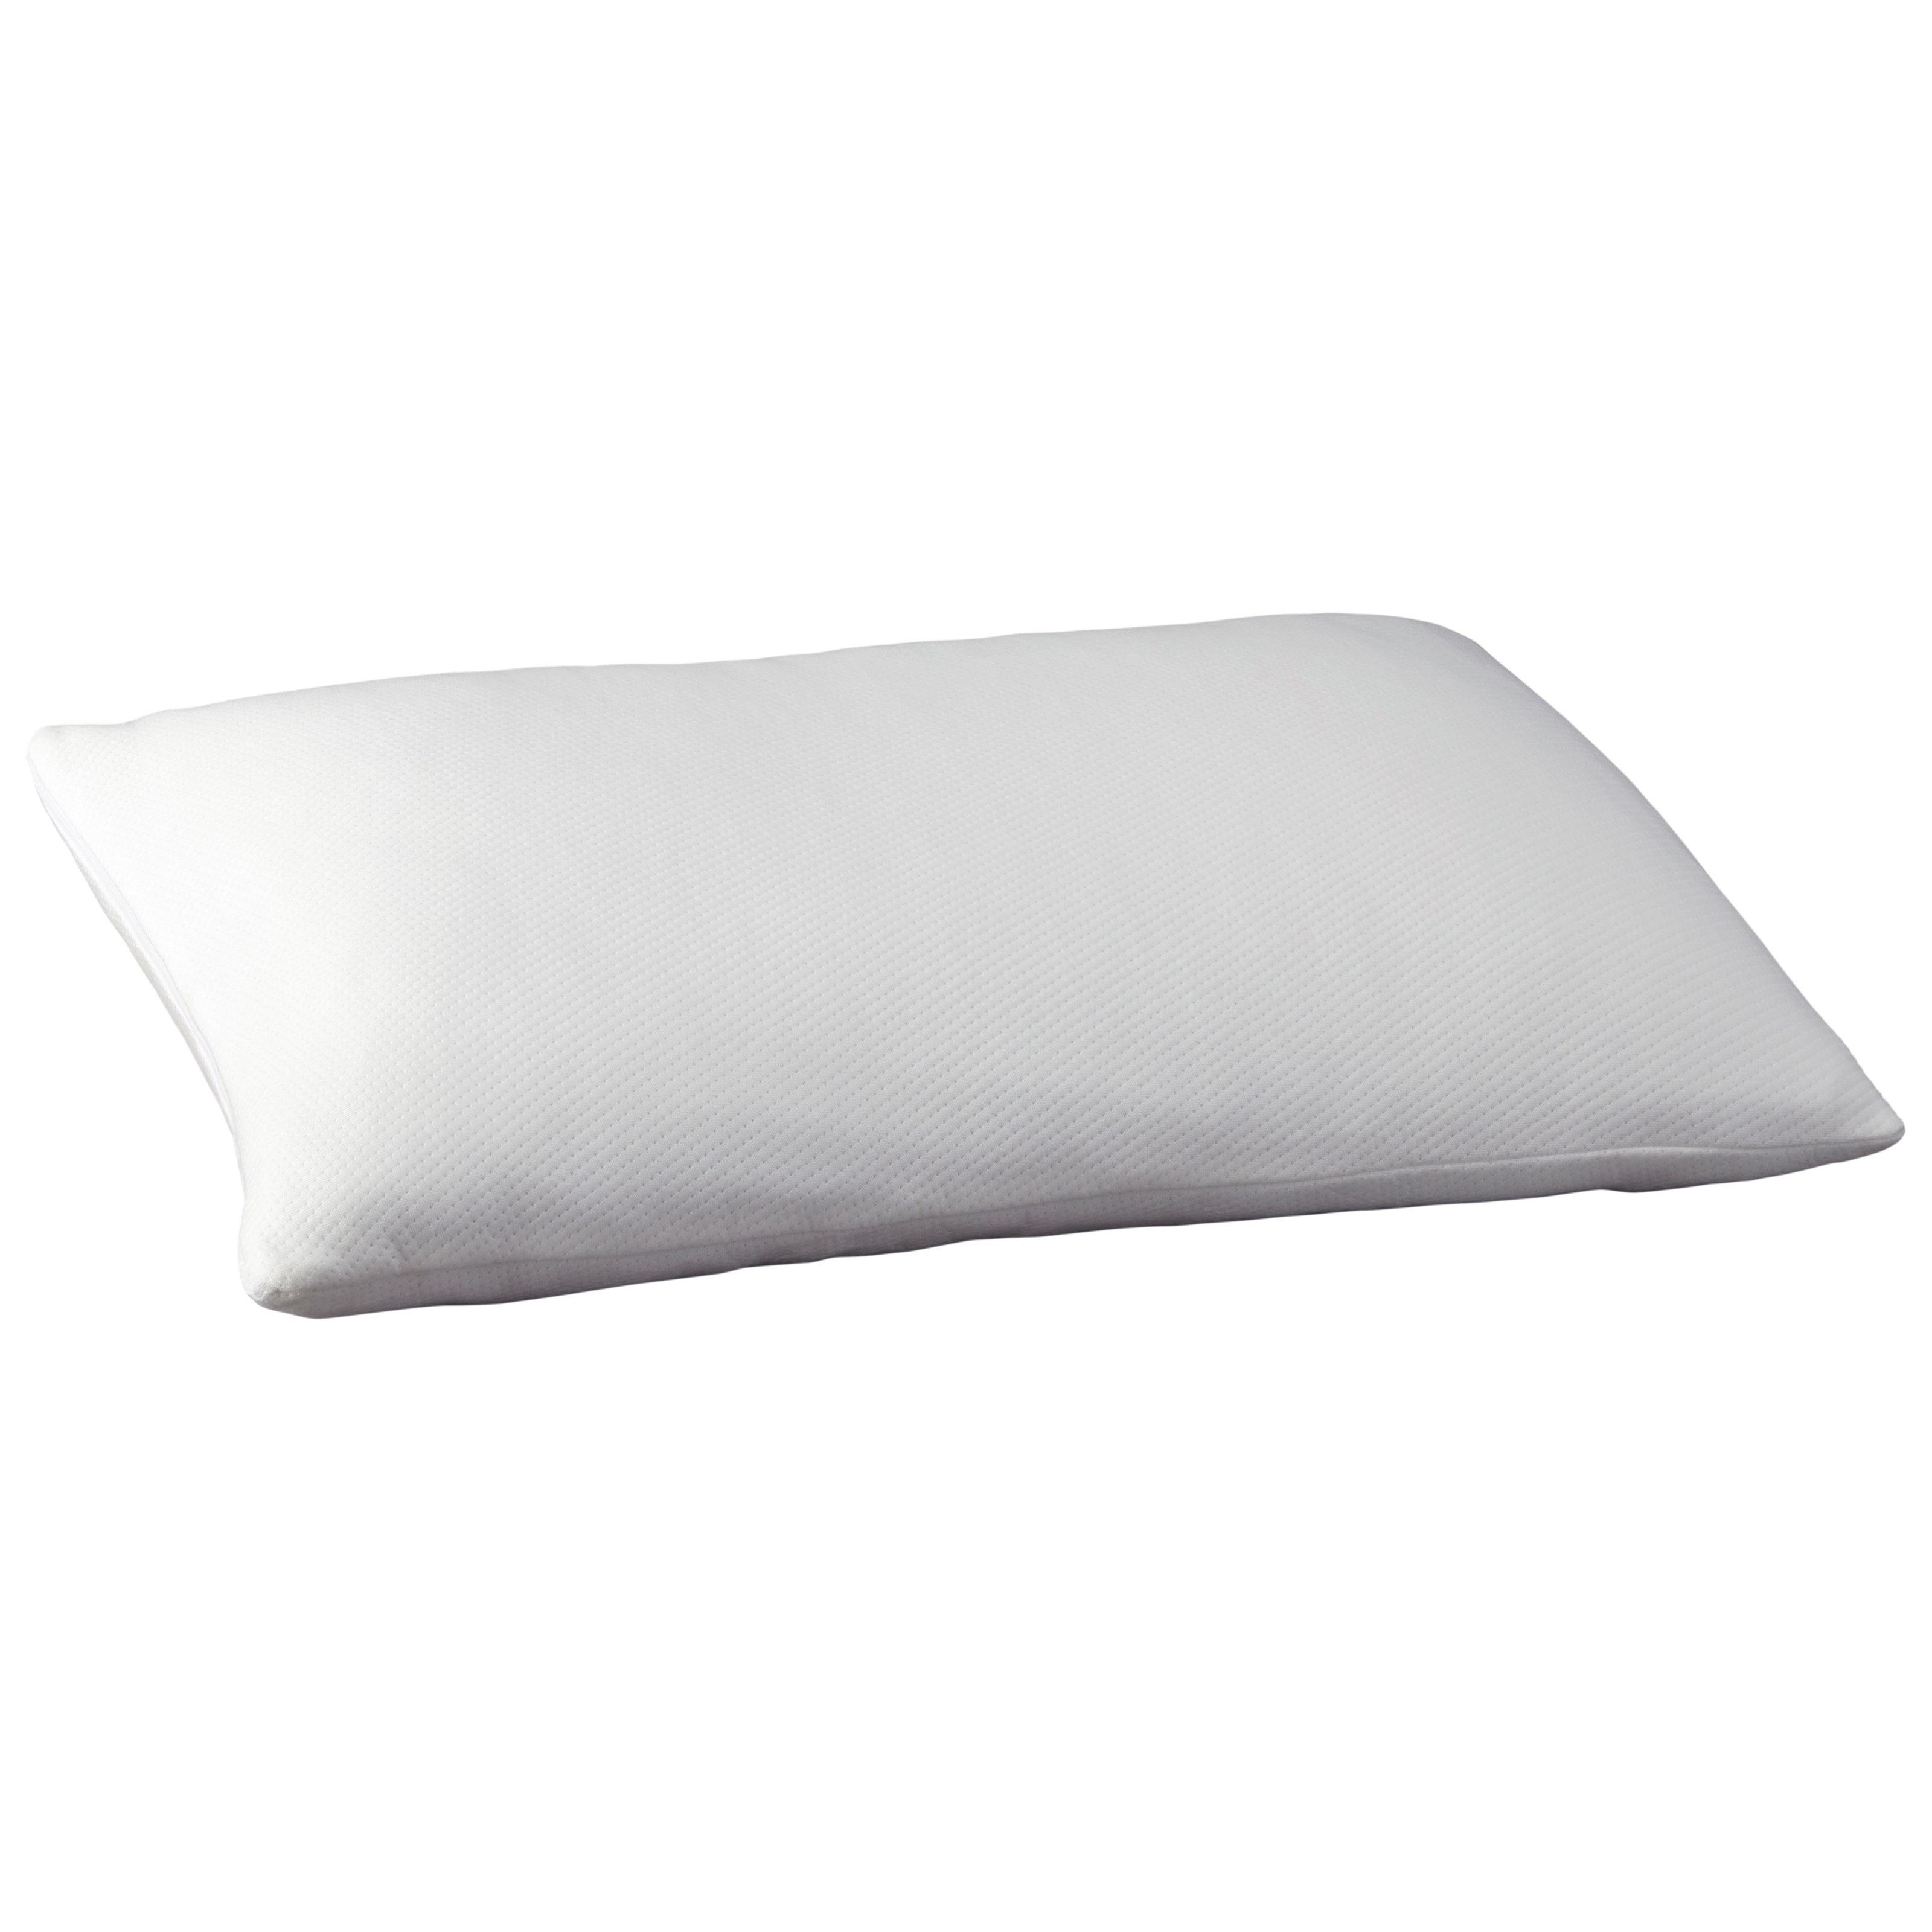 2016 Pillows Memory Foam Pillow by Sierra Sleep at Simply Home by Lindy's